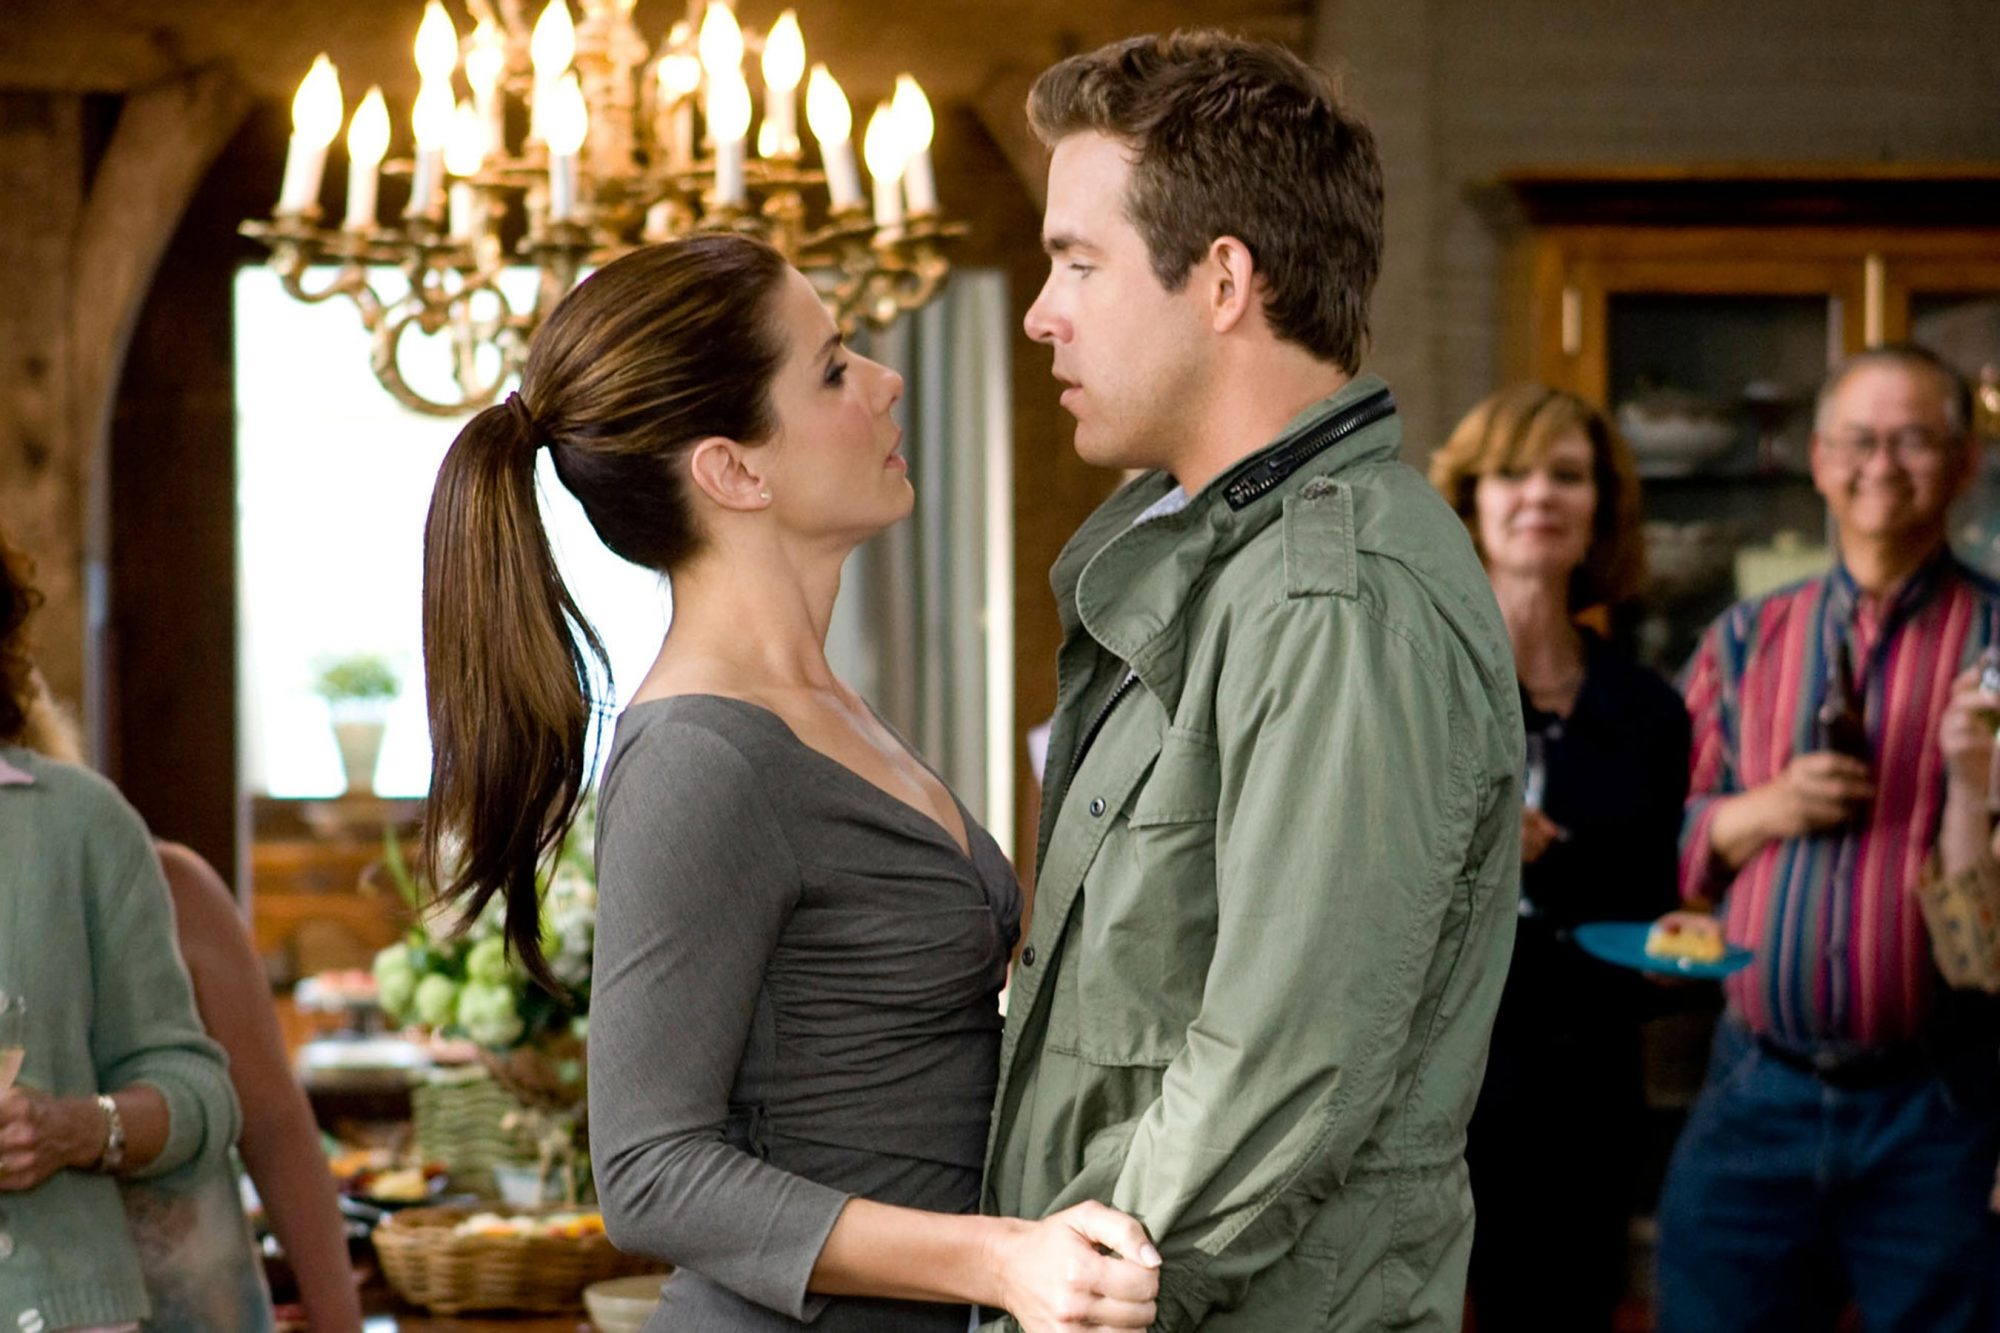 THE PROPOSAL, from left: Sandra Bullock, Ryan Reynolds, 2009. Ph: Sam Emerson/©Walt Disney Studios M